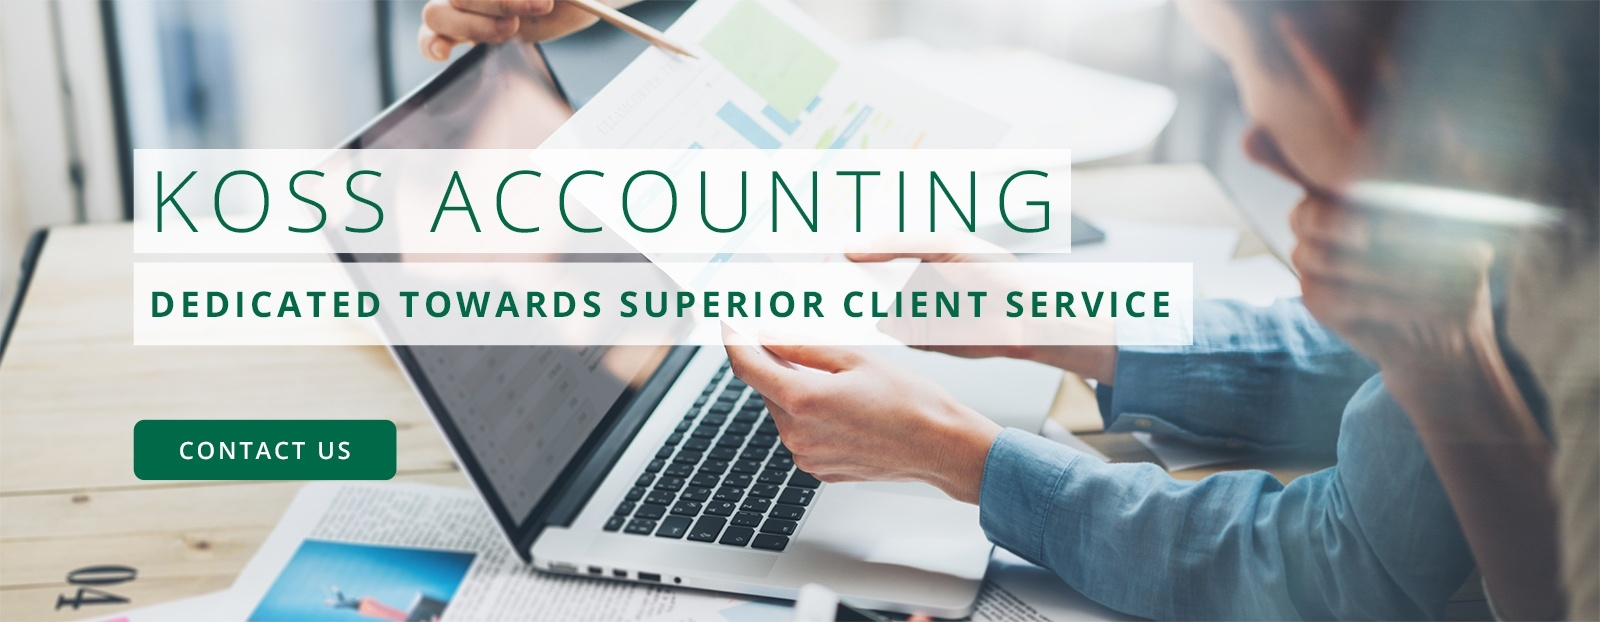 accounting services calgary